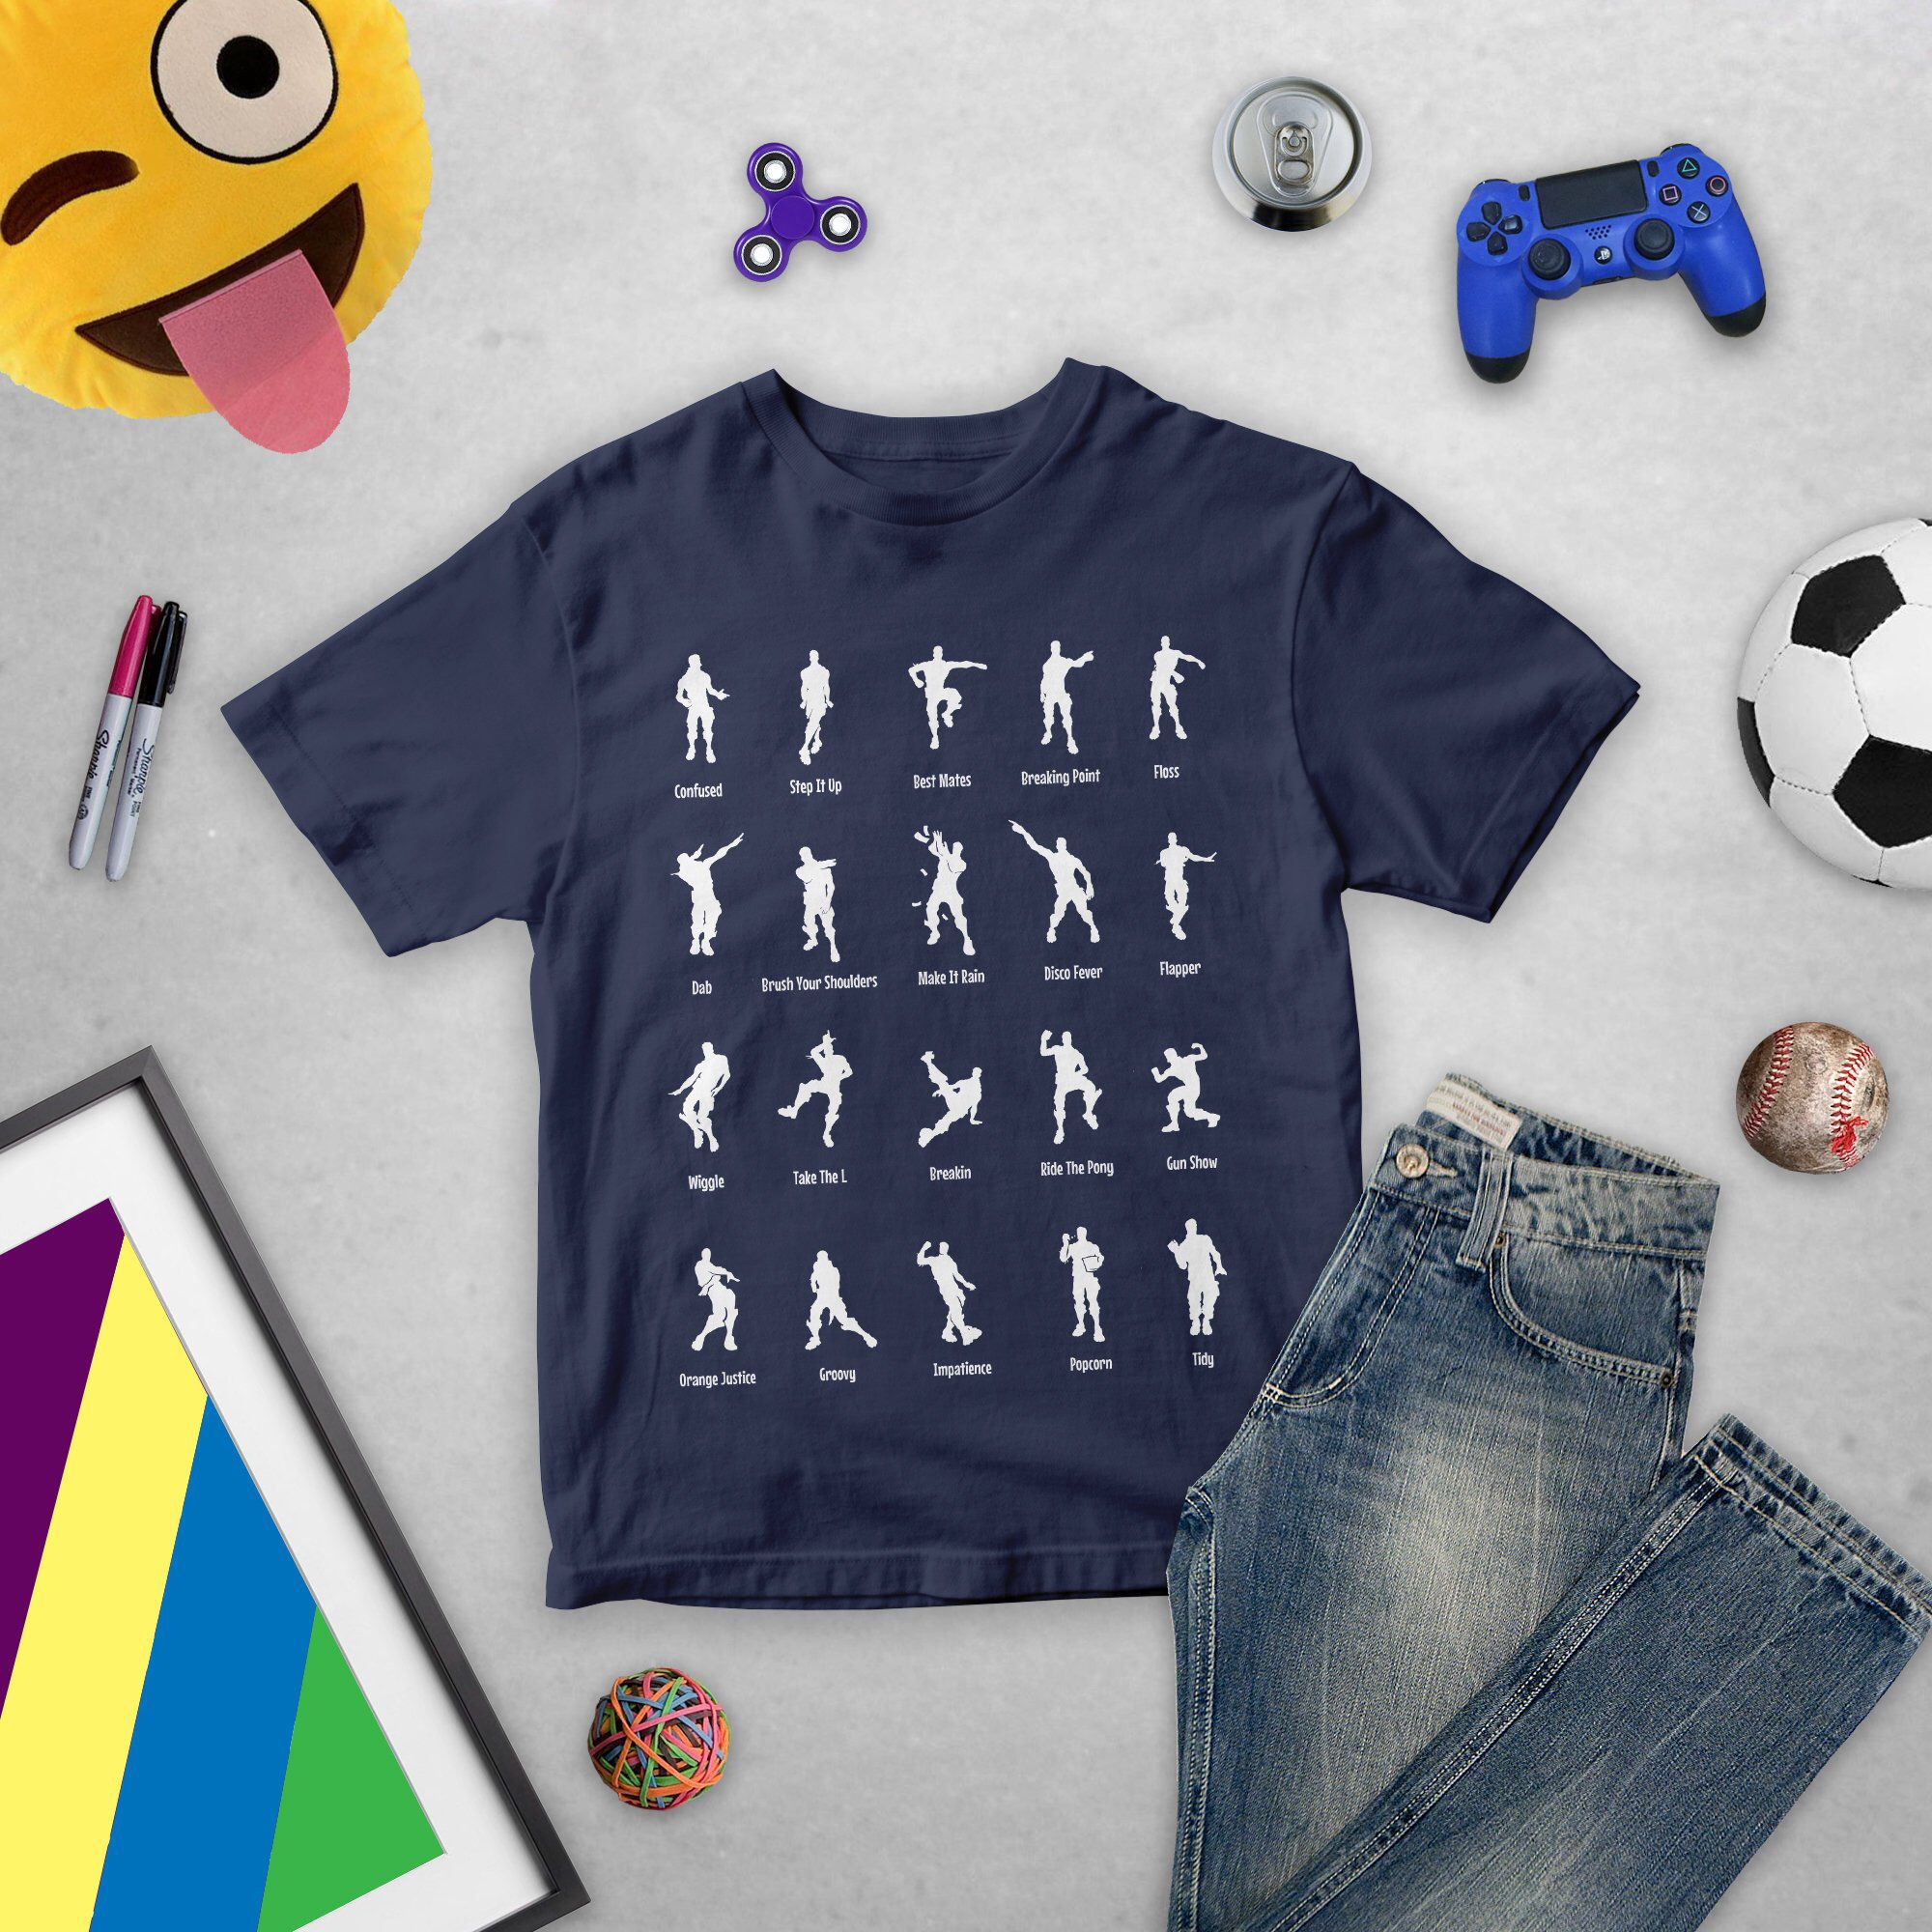 Switch Shoulders Fortnite Fortnite Emotes Dancing Characters T Shirt Top Tee Fornite Battle Royale Floss Best Mates T Shirt Kids Chil Childrens T Shirt Top Trending Outfits